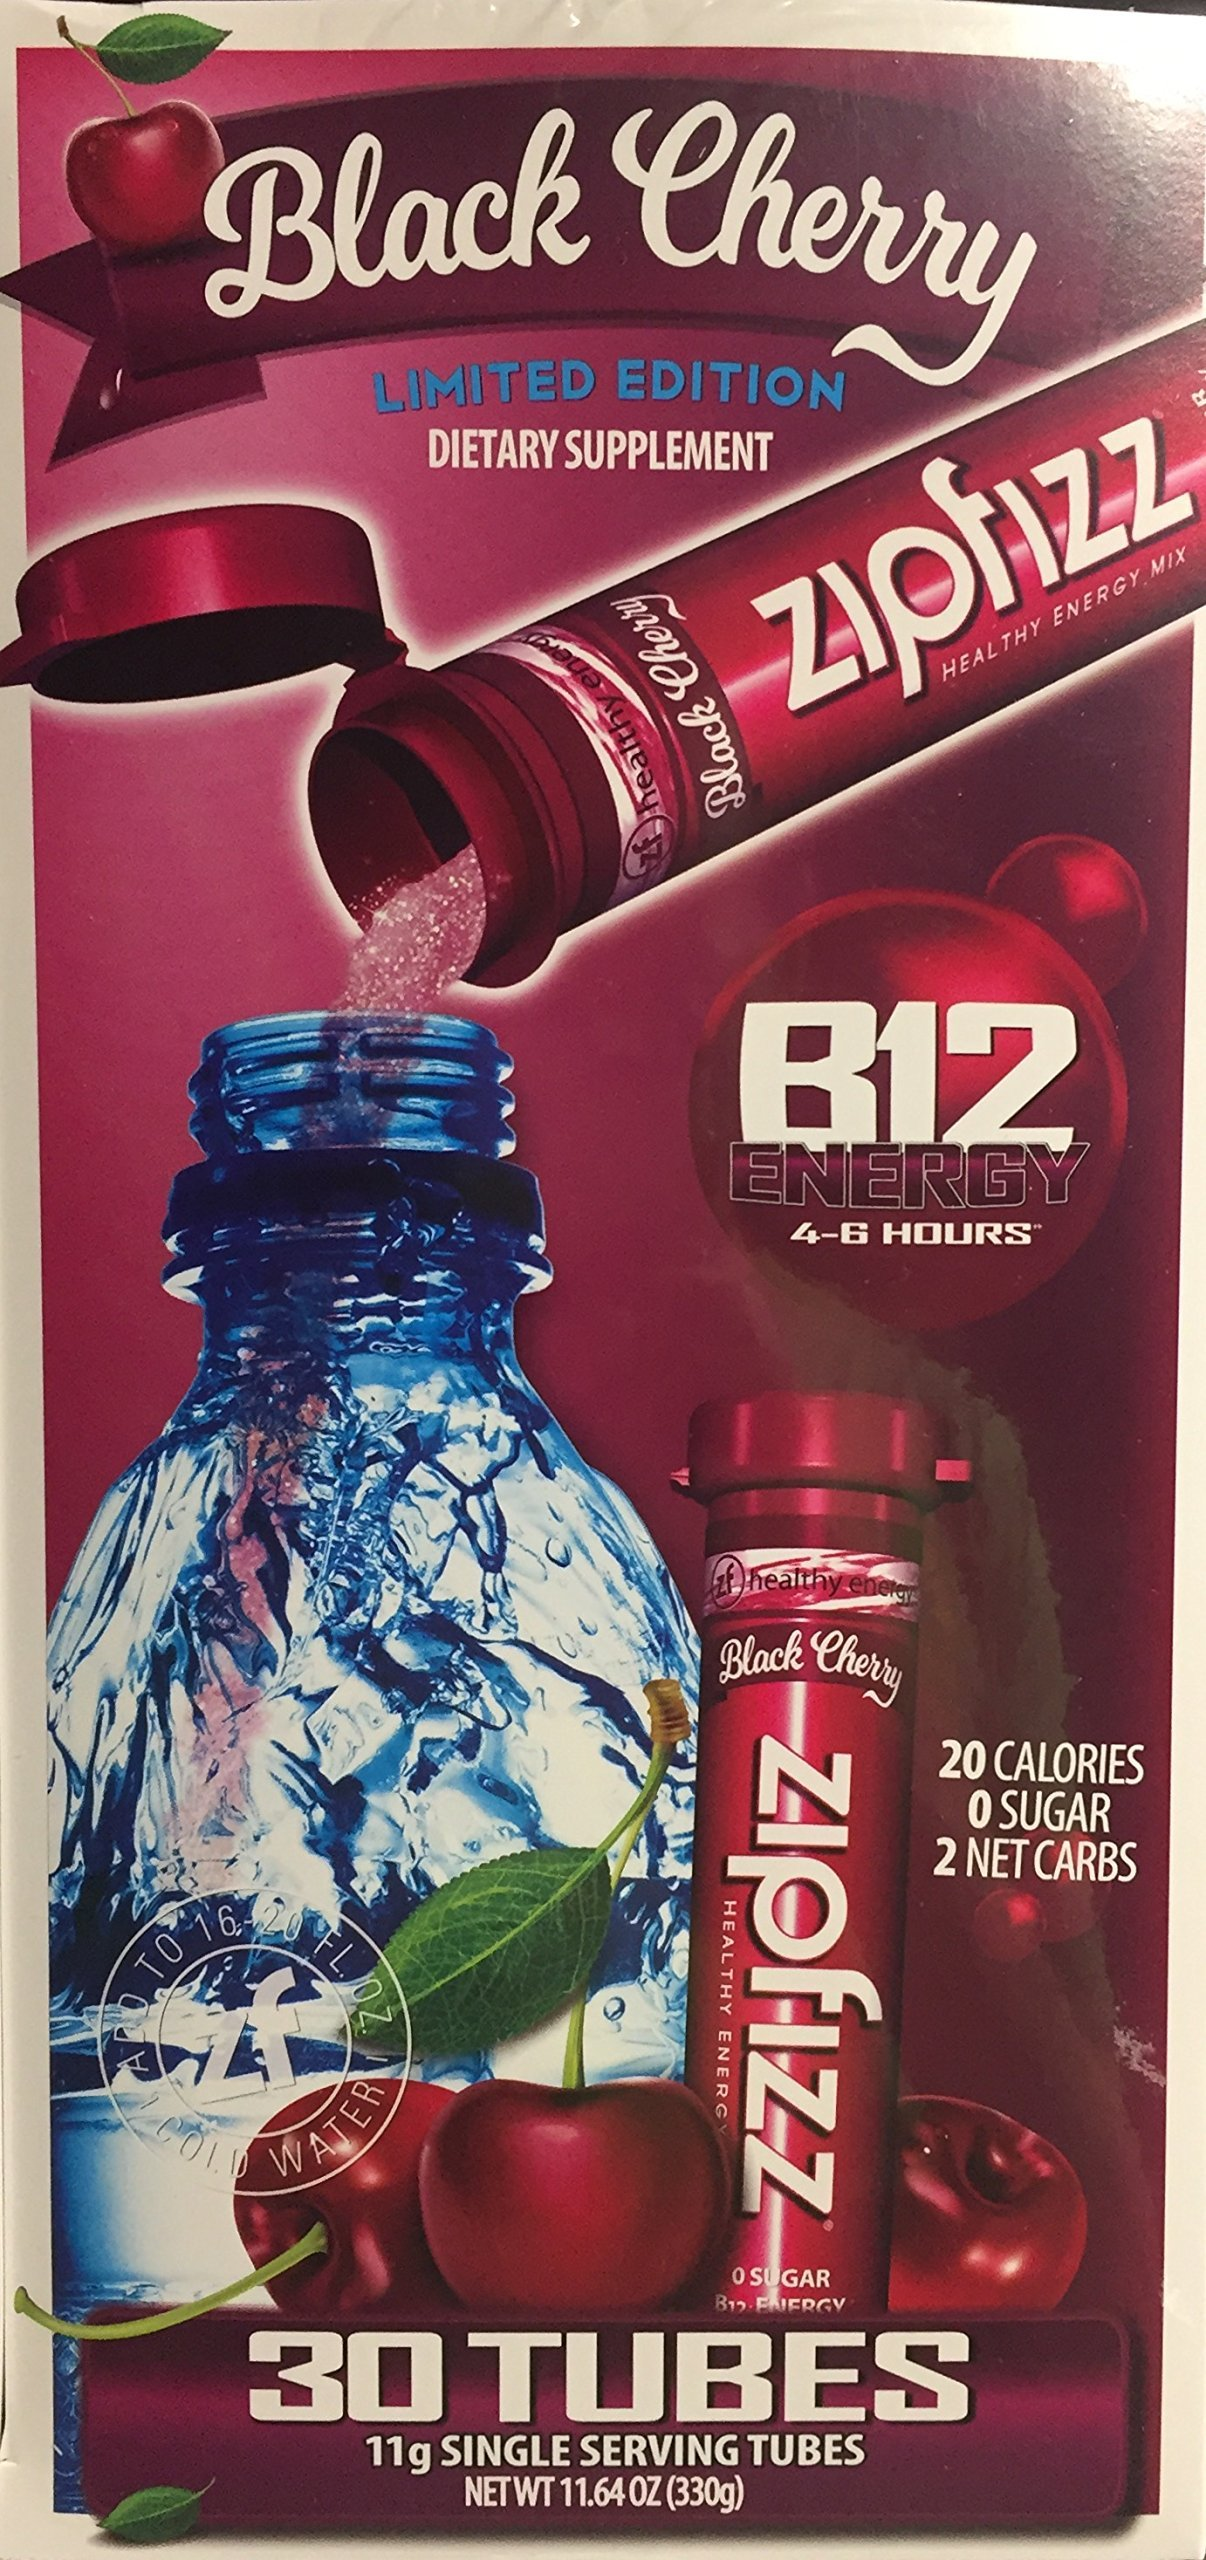 Zipfizz Healthy Energy Drink Mix Black Cherry Limited Edition, 30 count by Zipfizz